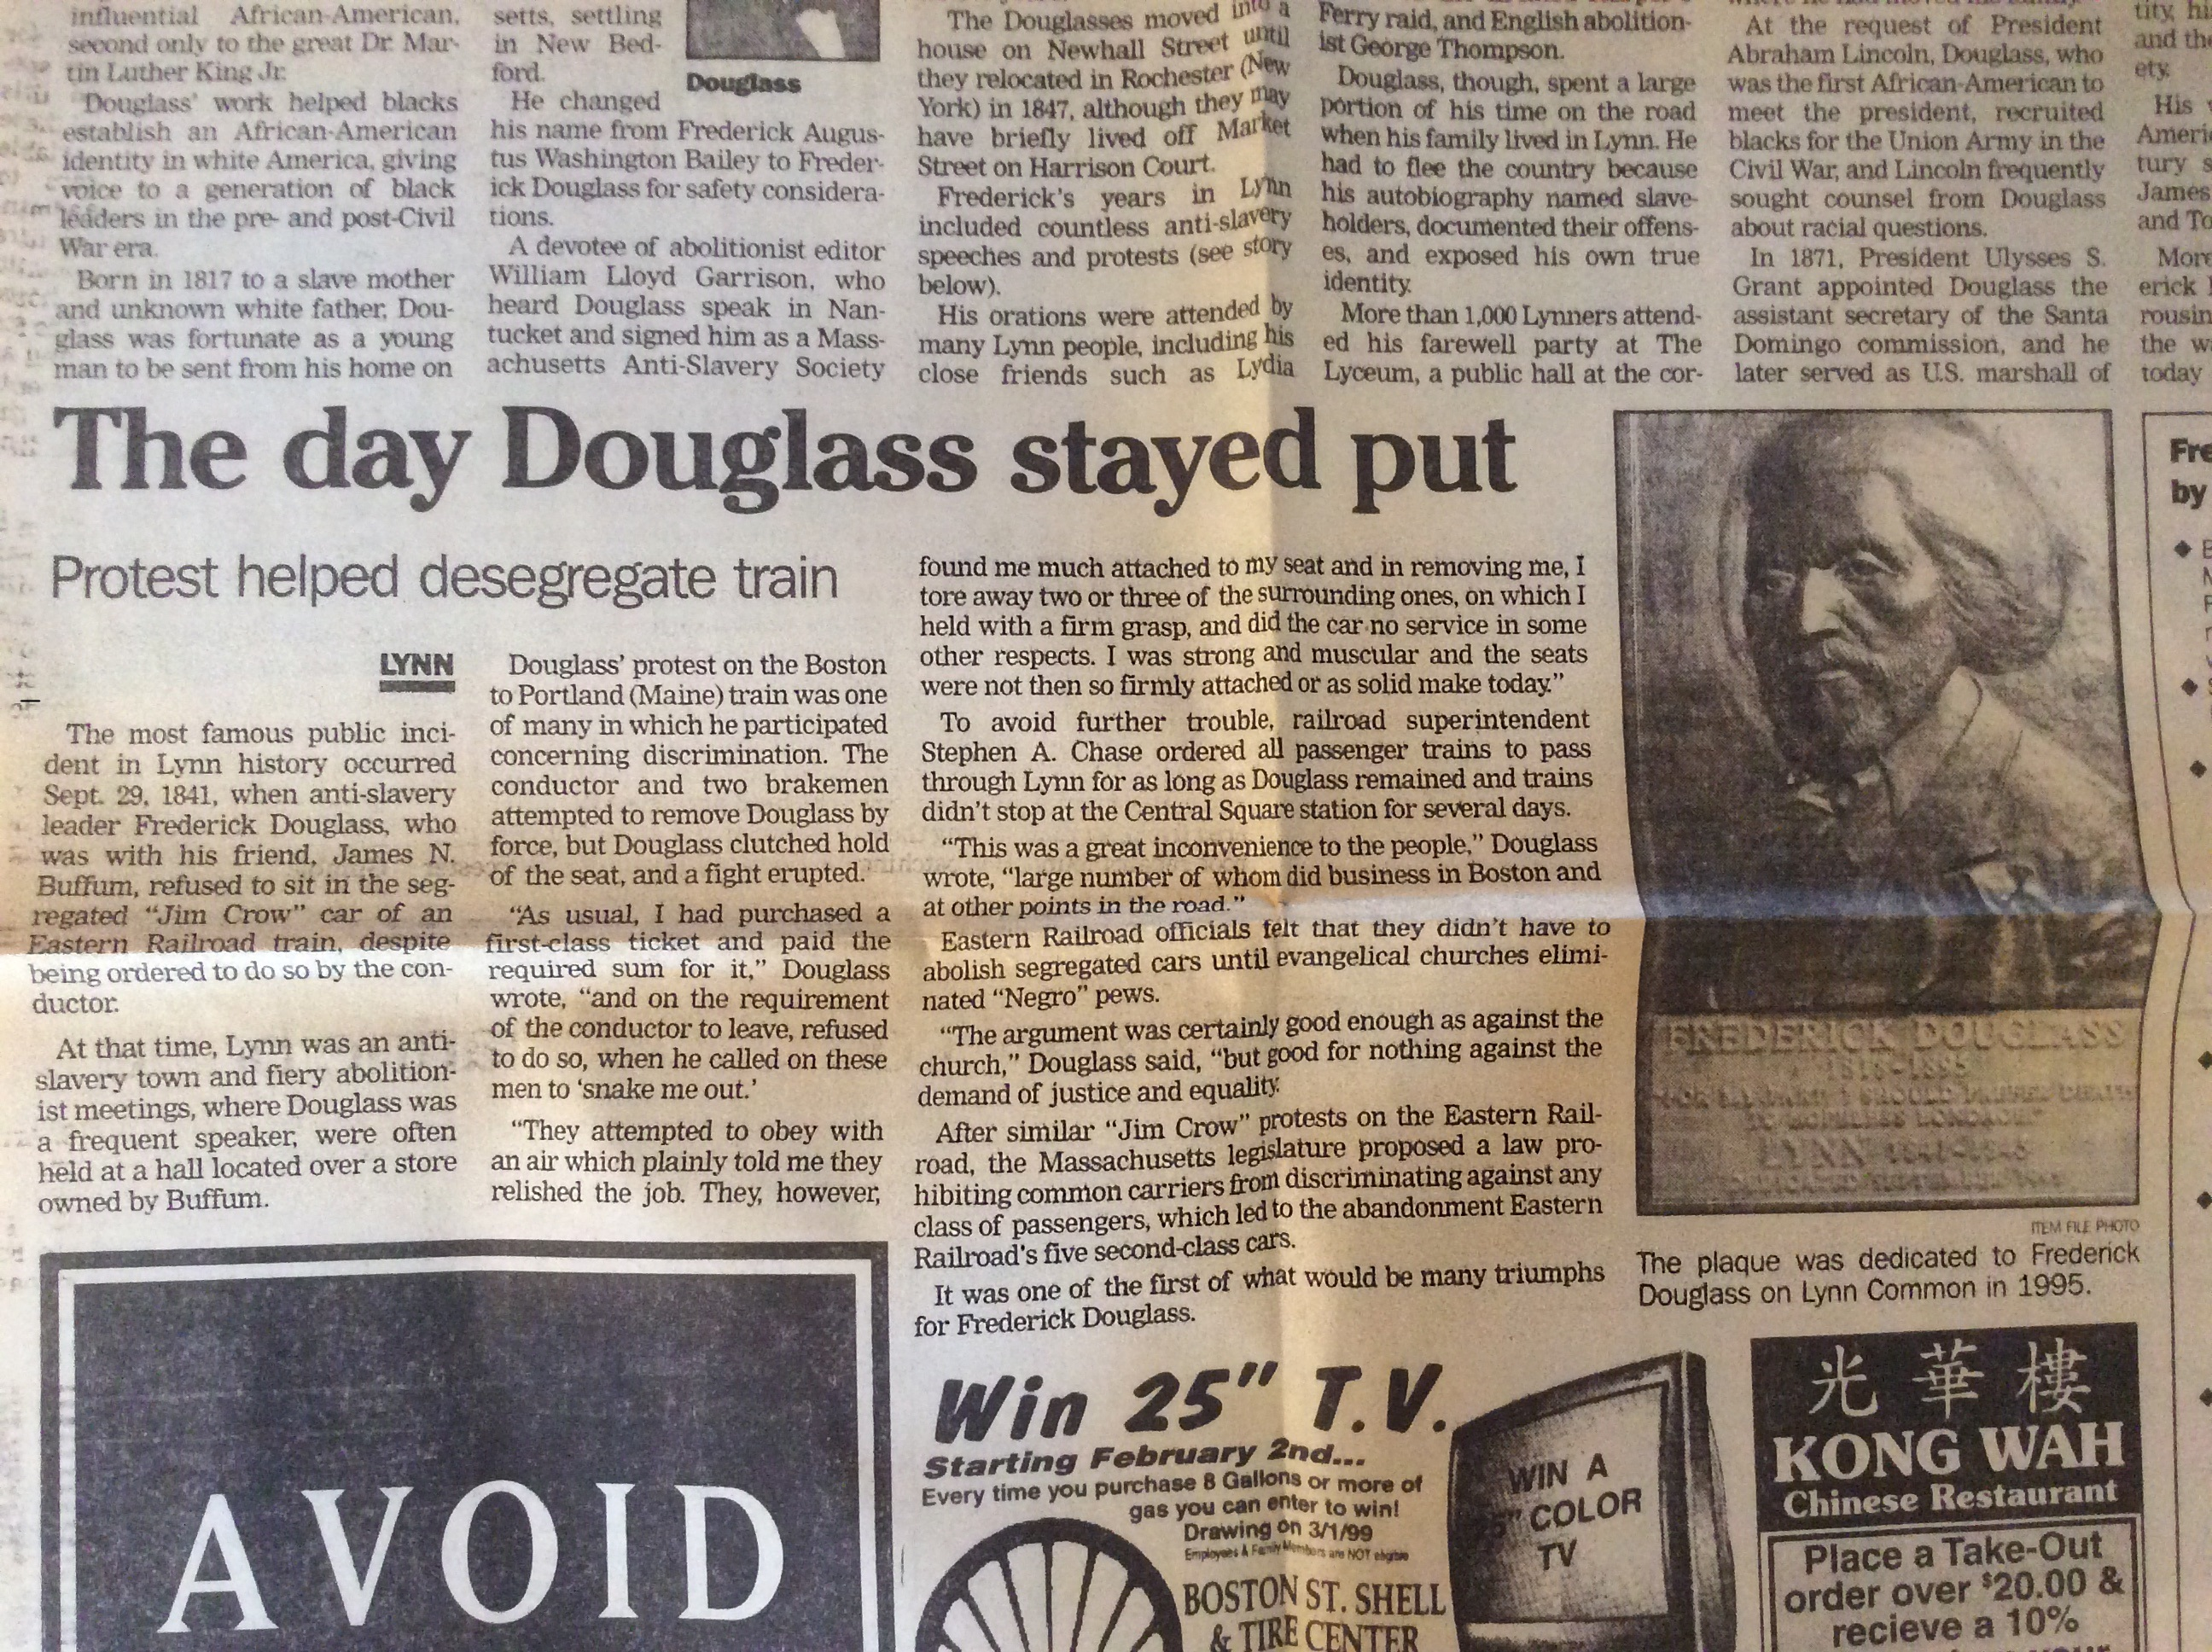 2016 ordinary philosophy newspaper clipping from the lynn museum and historical society about frederick douglass train car sit